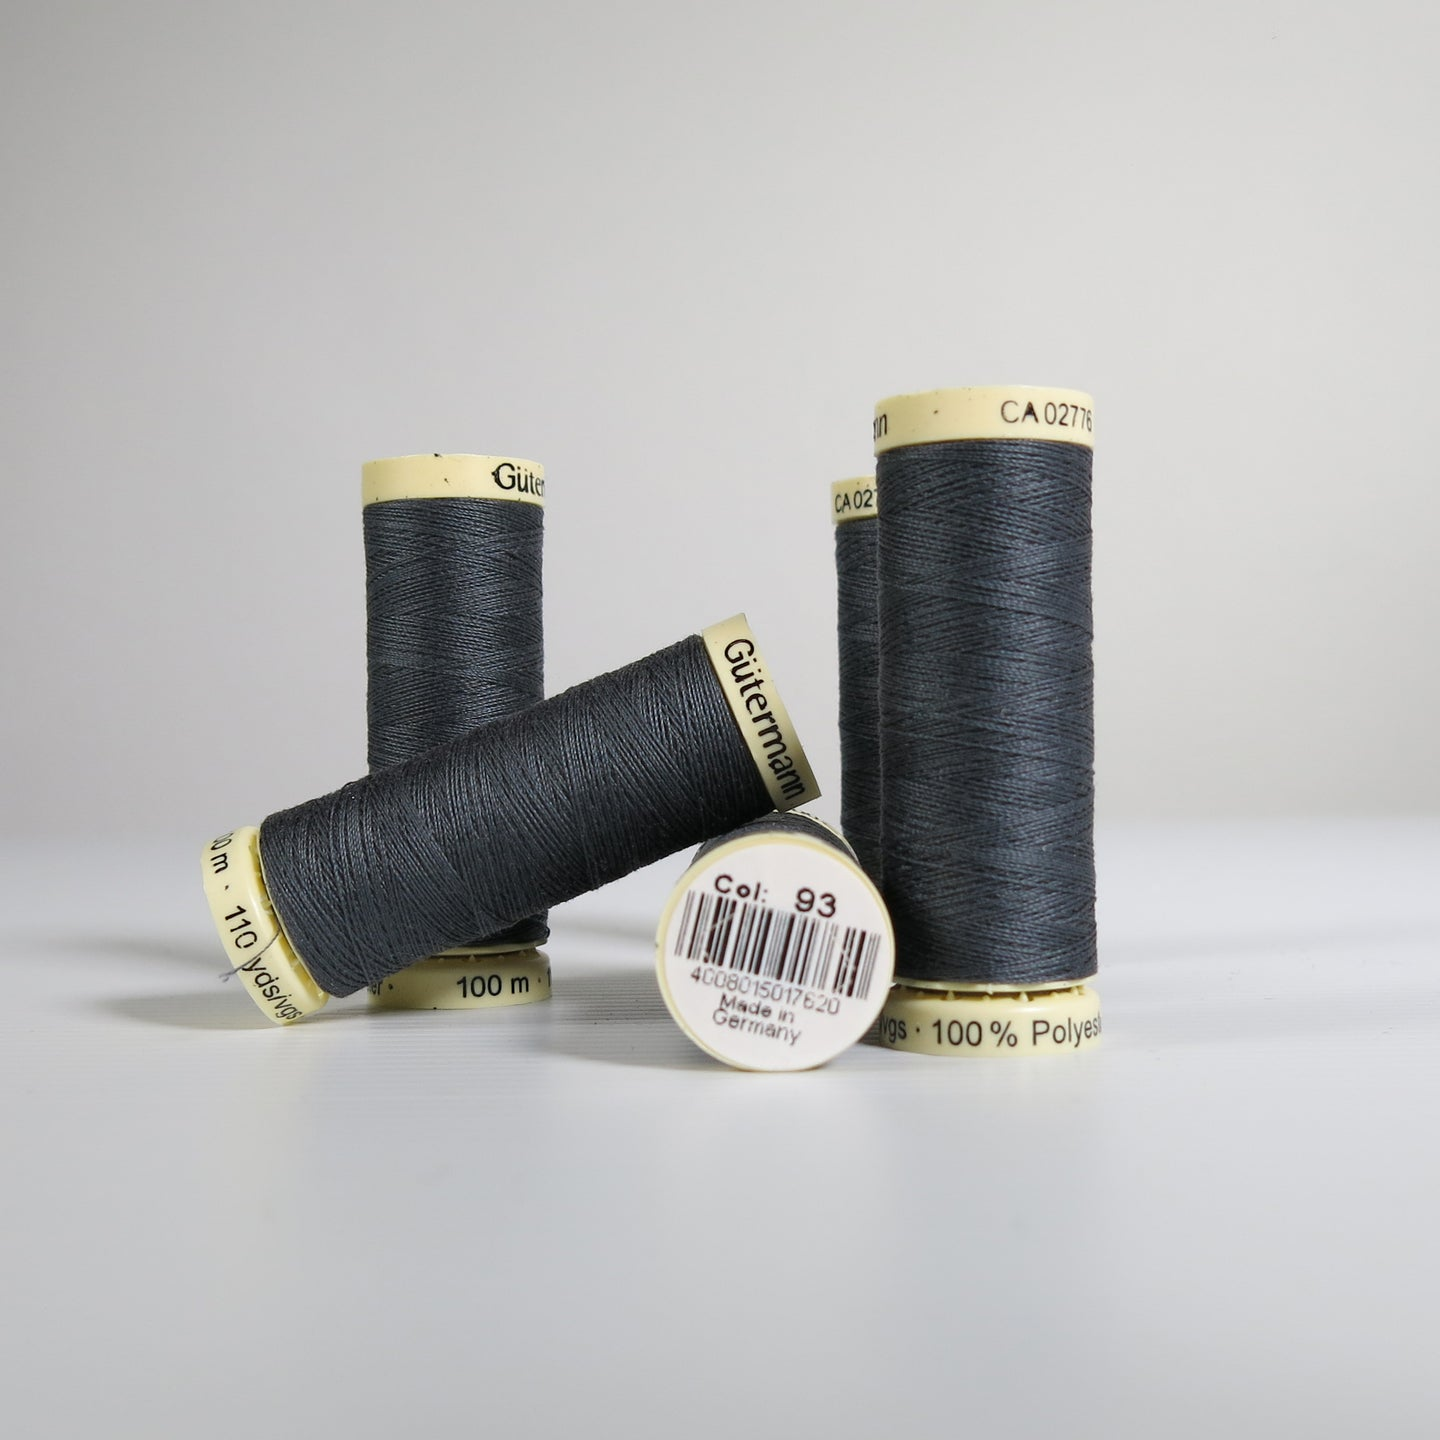 Gütermann polyester thread - 93 (100m)